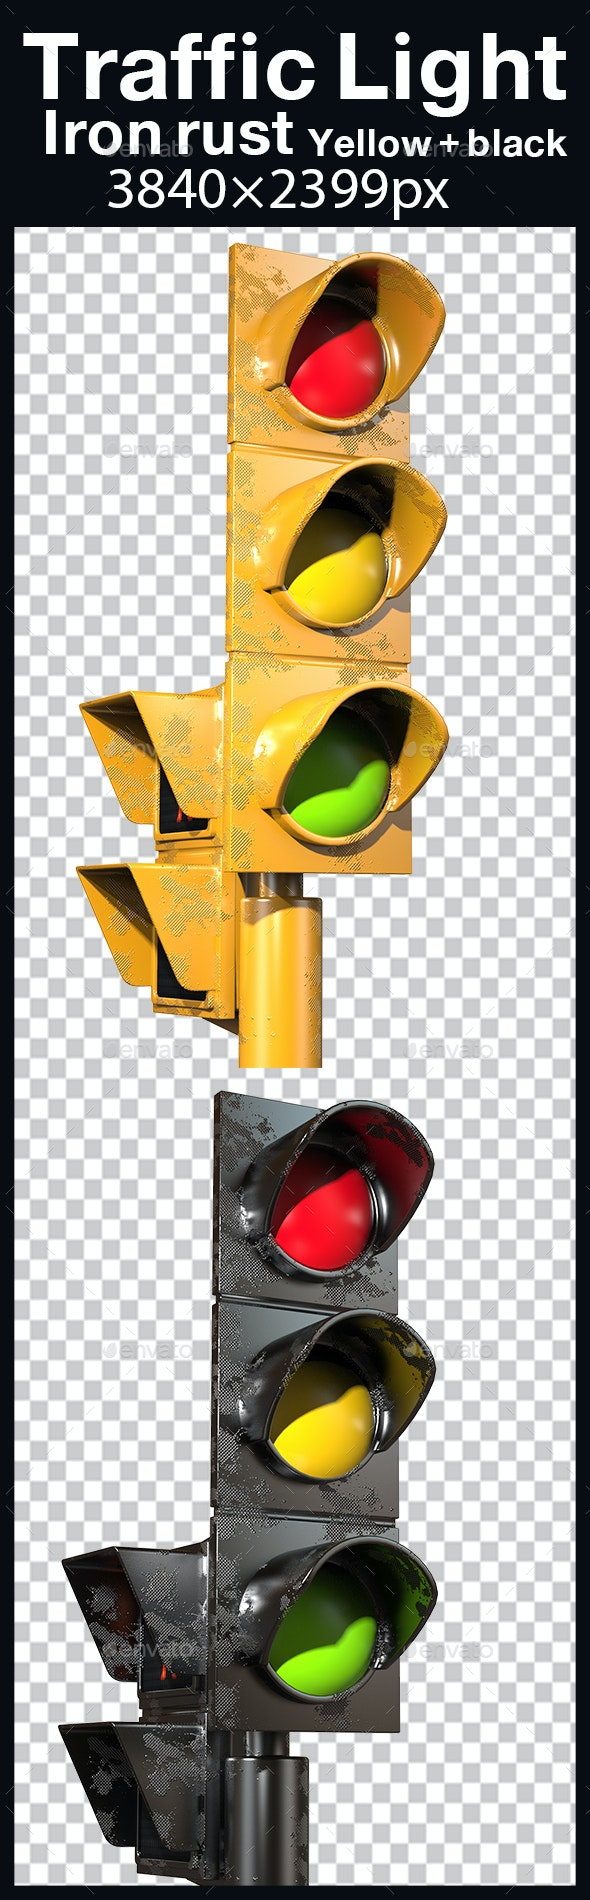 Traffic Light Iron Rust by MUS_GRAPHIC_ | GraphicRiver